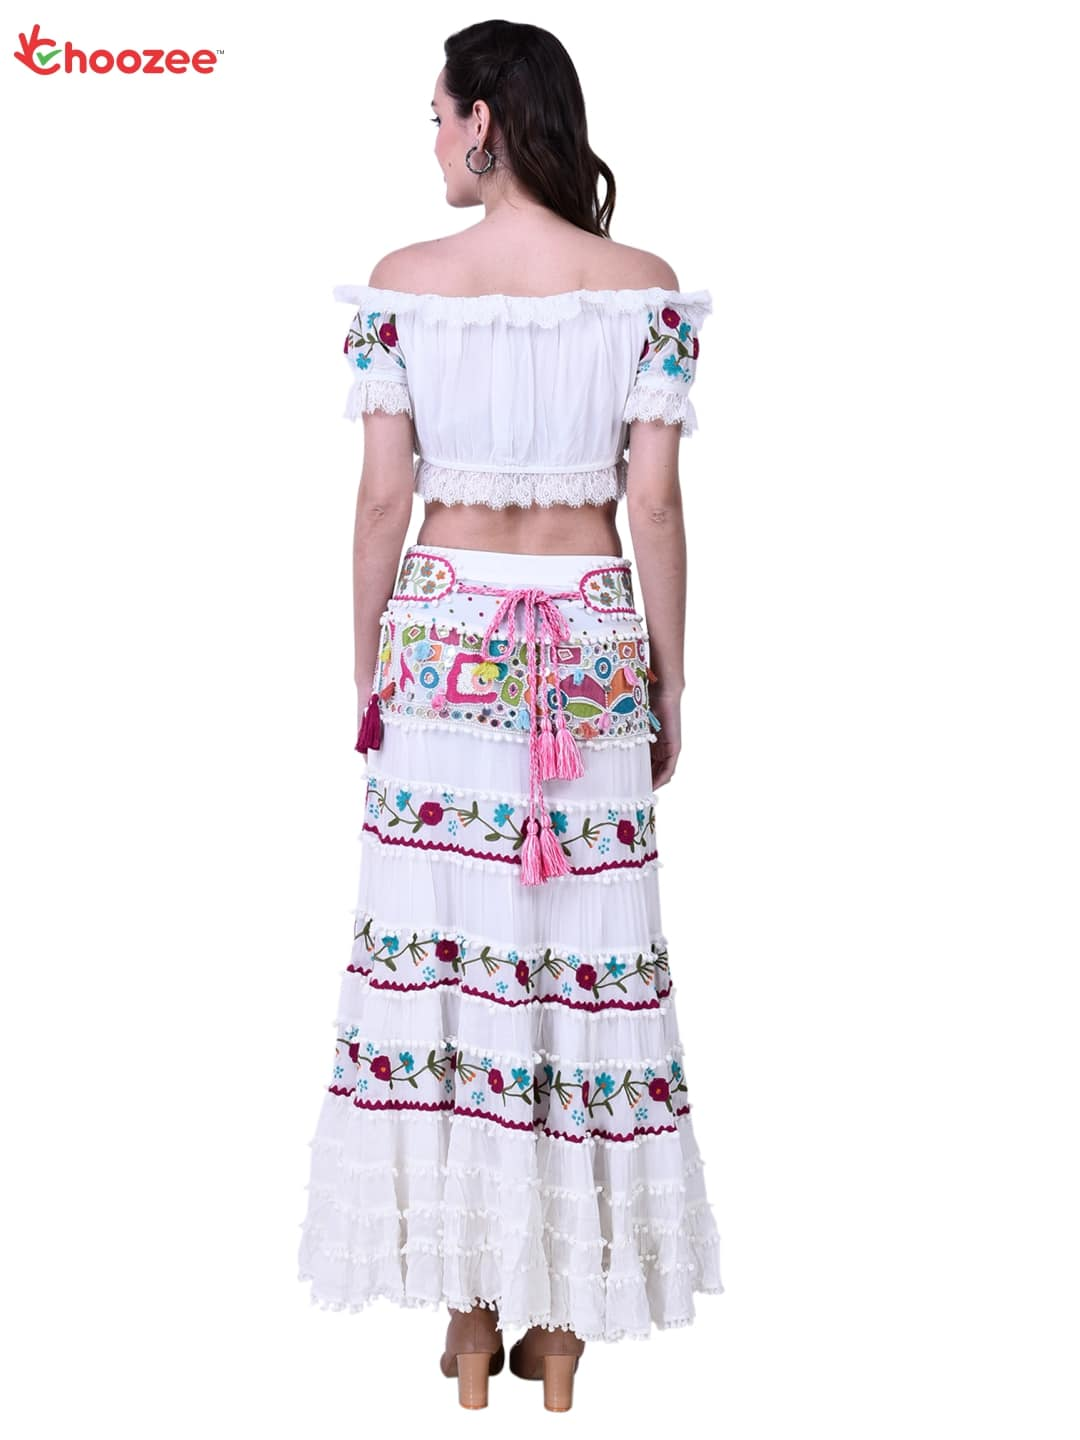 Victoria Crop Top Skirt with Hand Embroidery (Pearl, Mirror & Tassel Work)